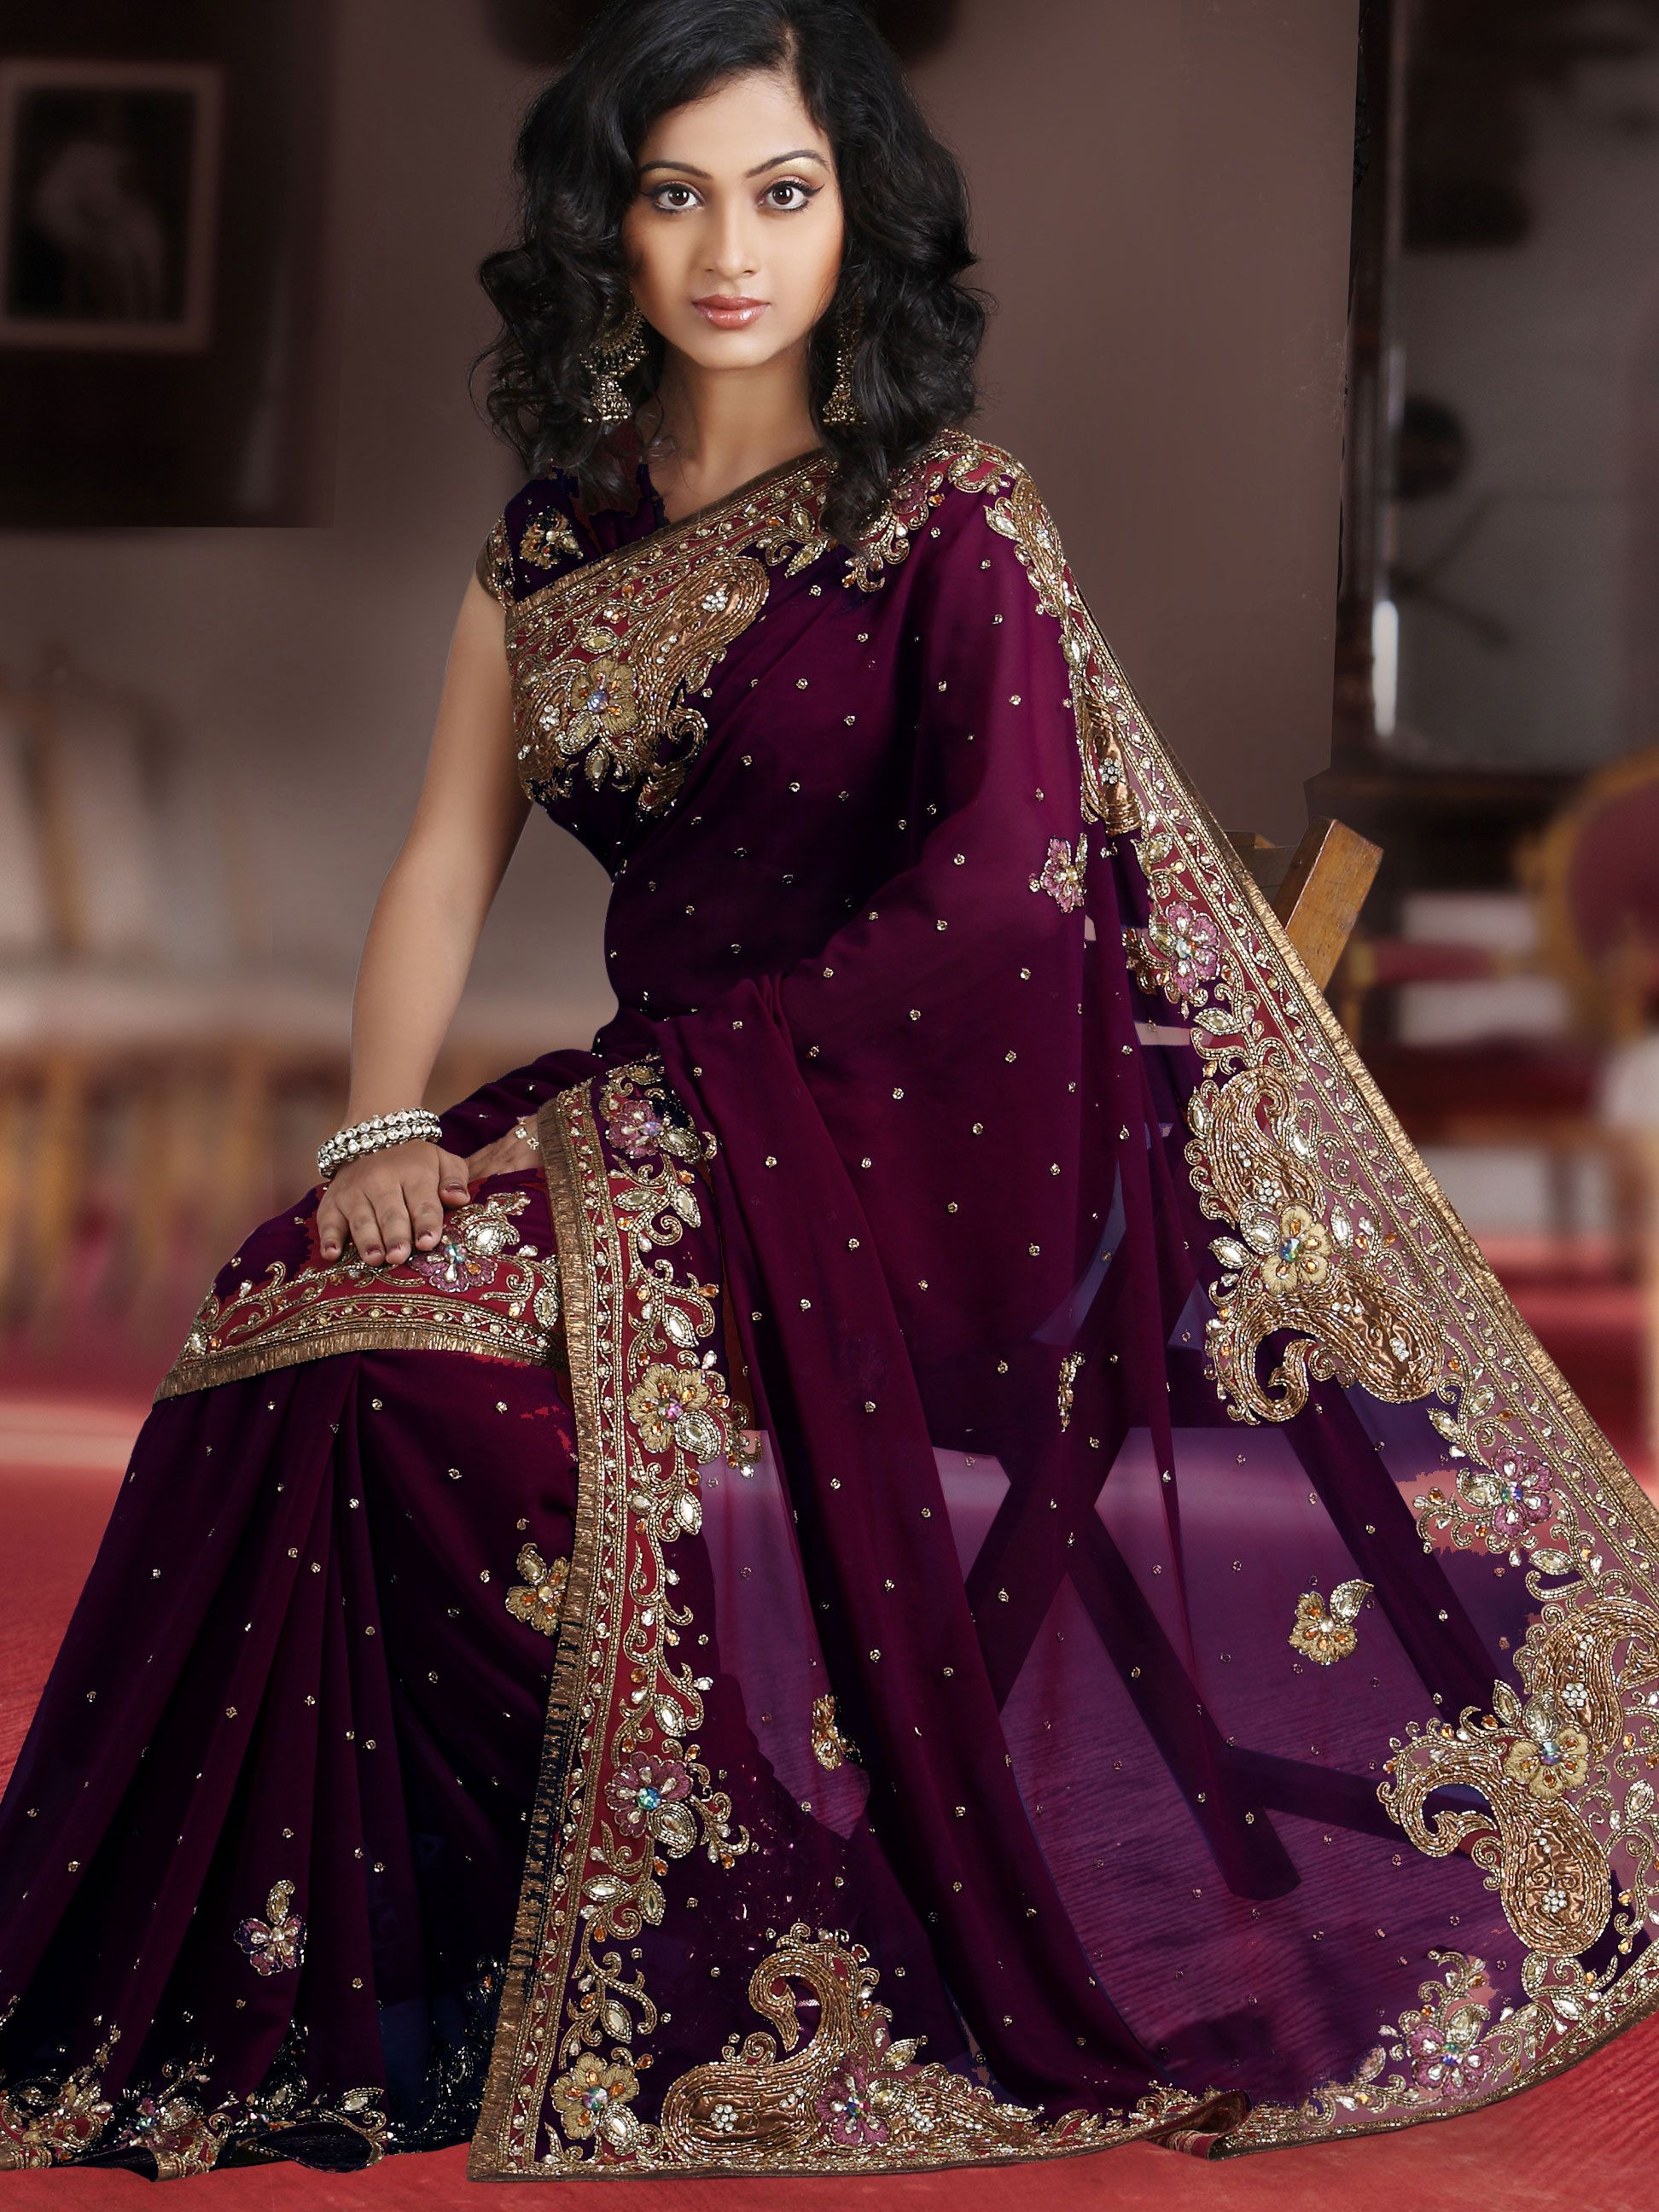 edf6efa31865 Wine Faux Georgette Saree with Blouse Online Shopping  SLSSK4800 Gorgeous  color! This online store has beautiful clothing at (I think) reasonable  prices!